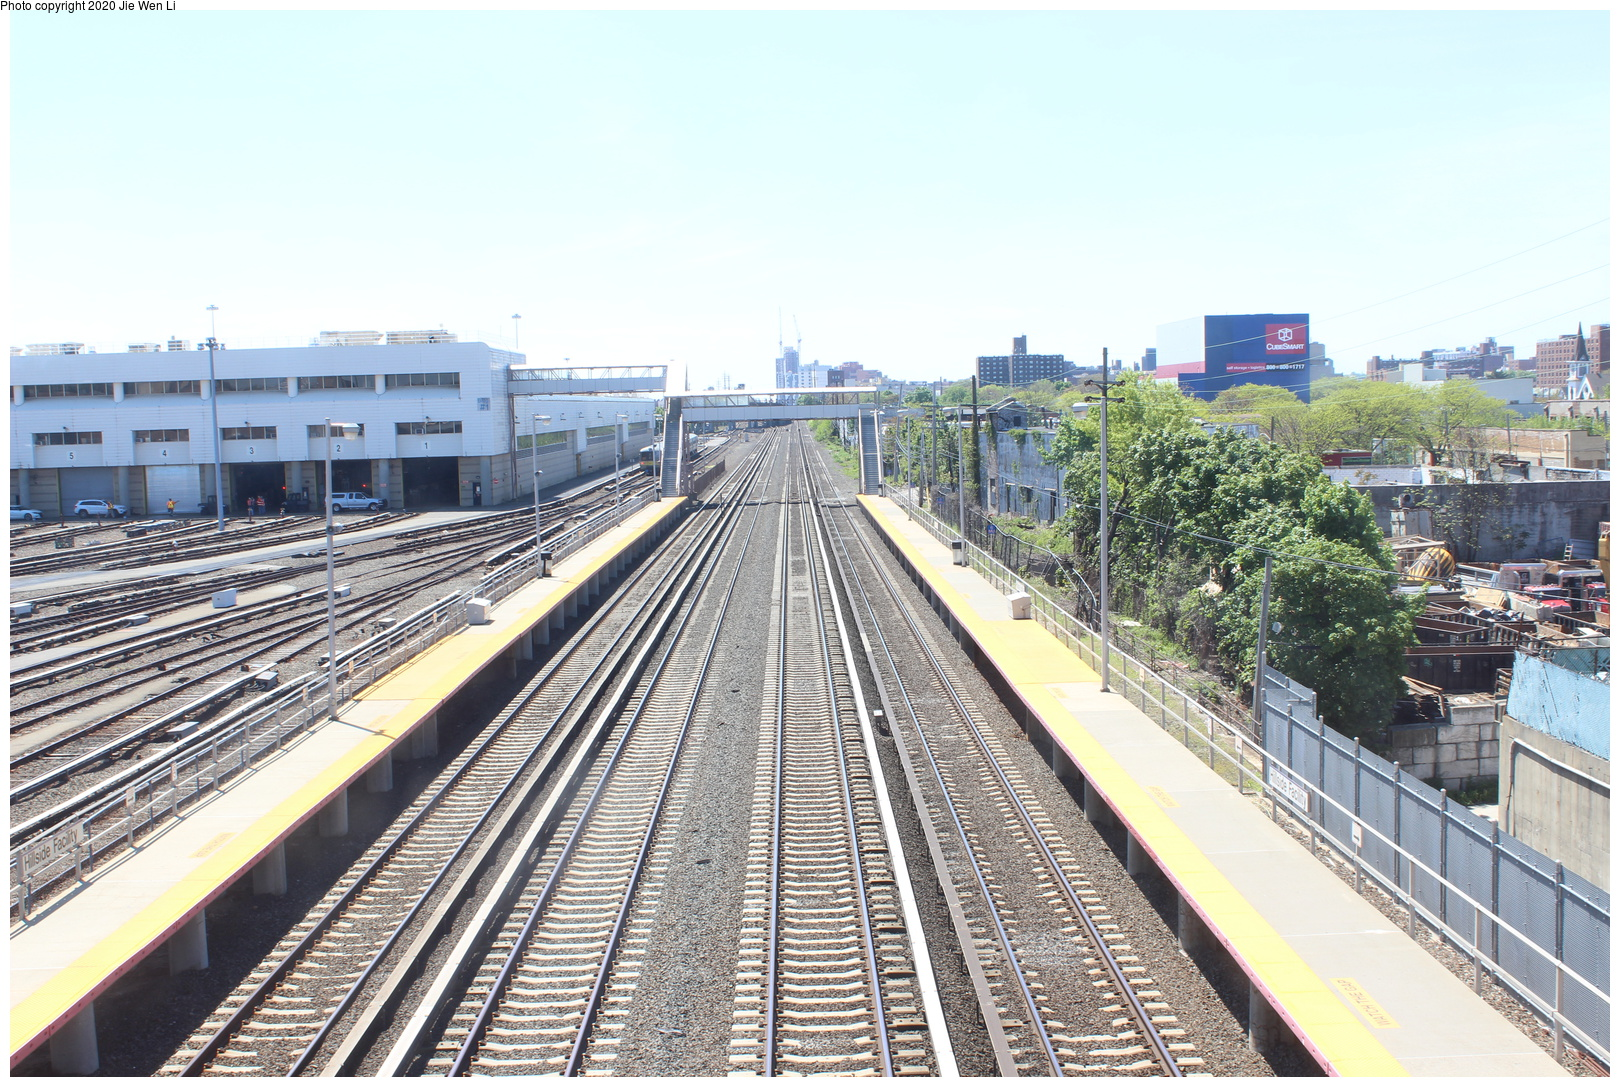 (213k, 1026x1044)<br><b>Country:</b> United States<br><b>City:</b> New York<br><b>System:</b> New York City Transit<br><b>Location:</b> East 180th Street Yard<br><b>Car:</b> Low-V 4932/5324 <br><b>Photo by:</b> Joel Shanus<br><b>Viewed (this week/total):</b> 3 / 767